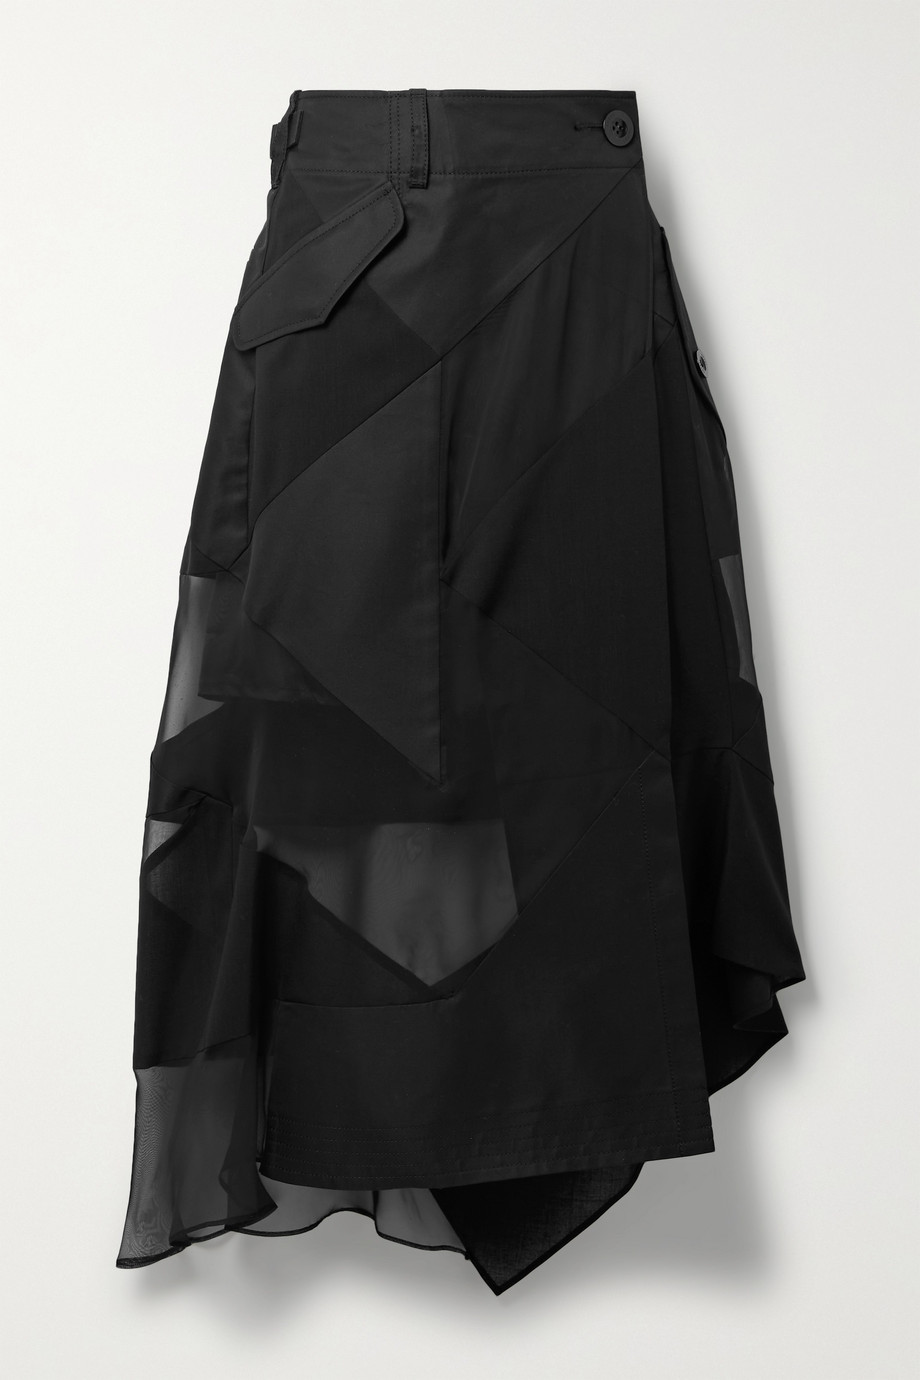 Sacai + Hank Willis Thomas asymmetric paneled twill, chiffon and poplin wrap skirt